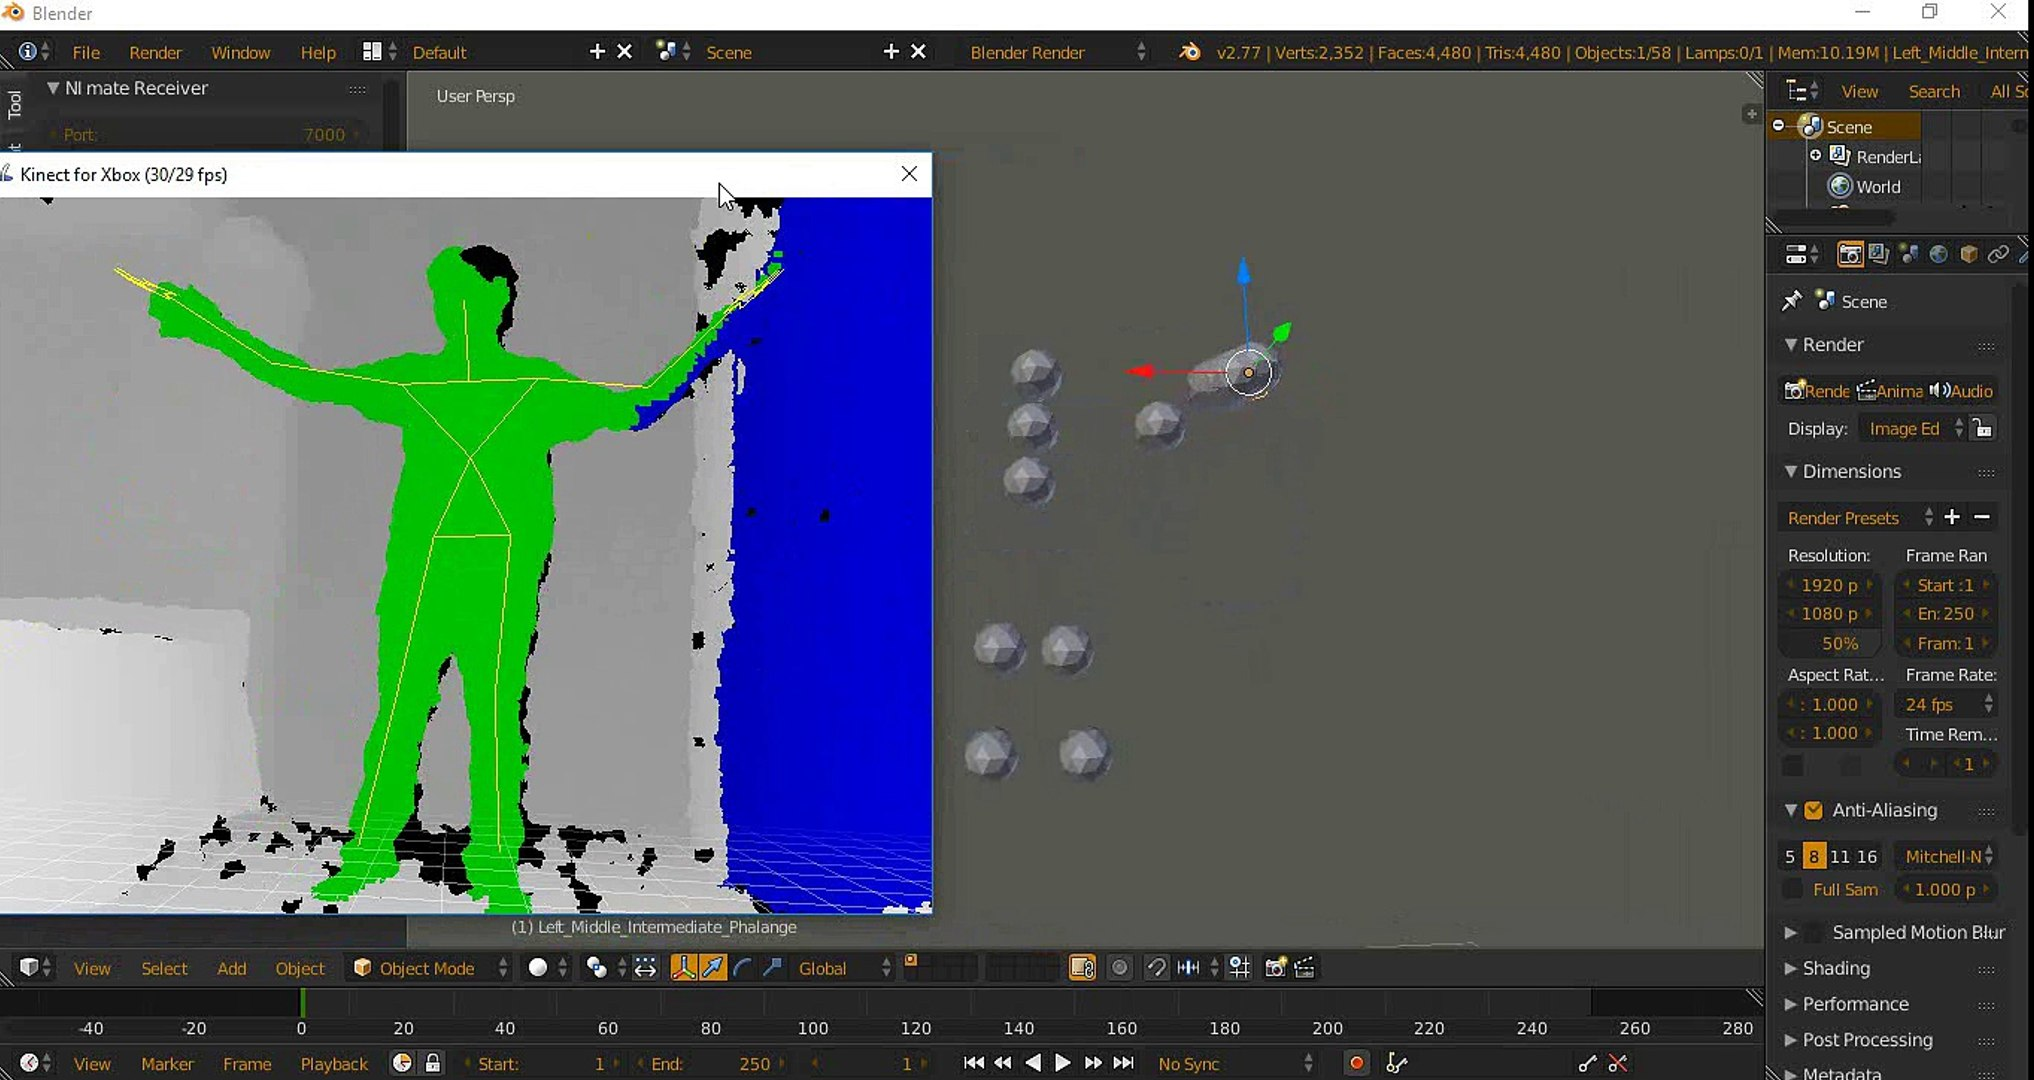 Kinect motion capture recording in blender